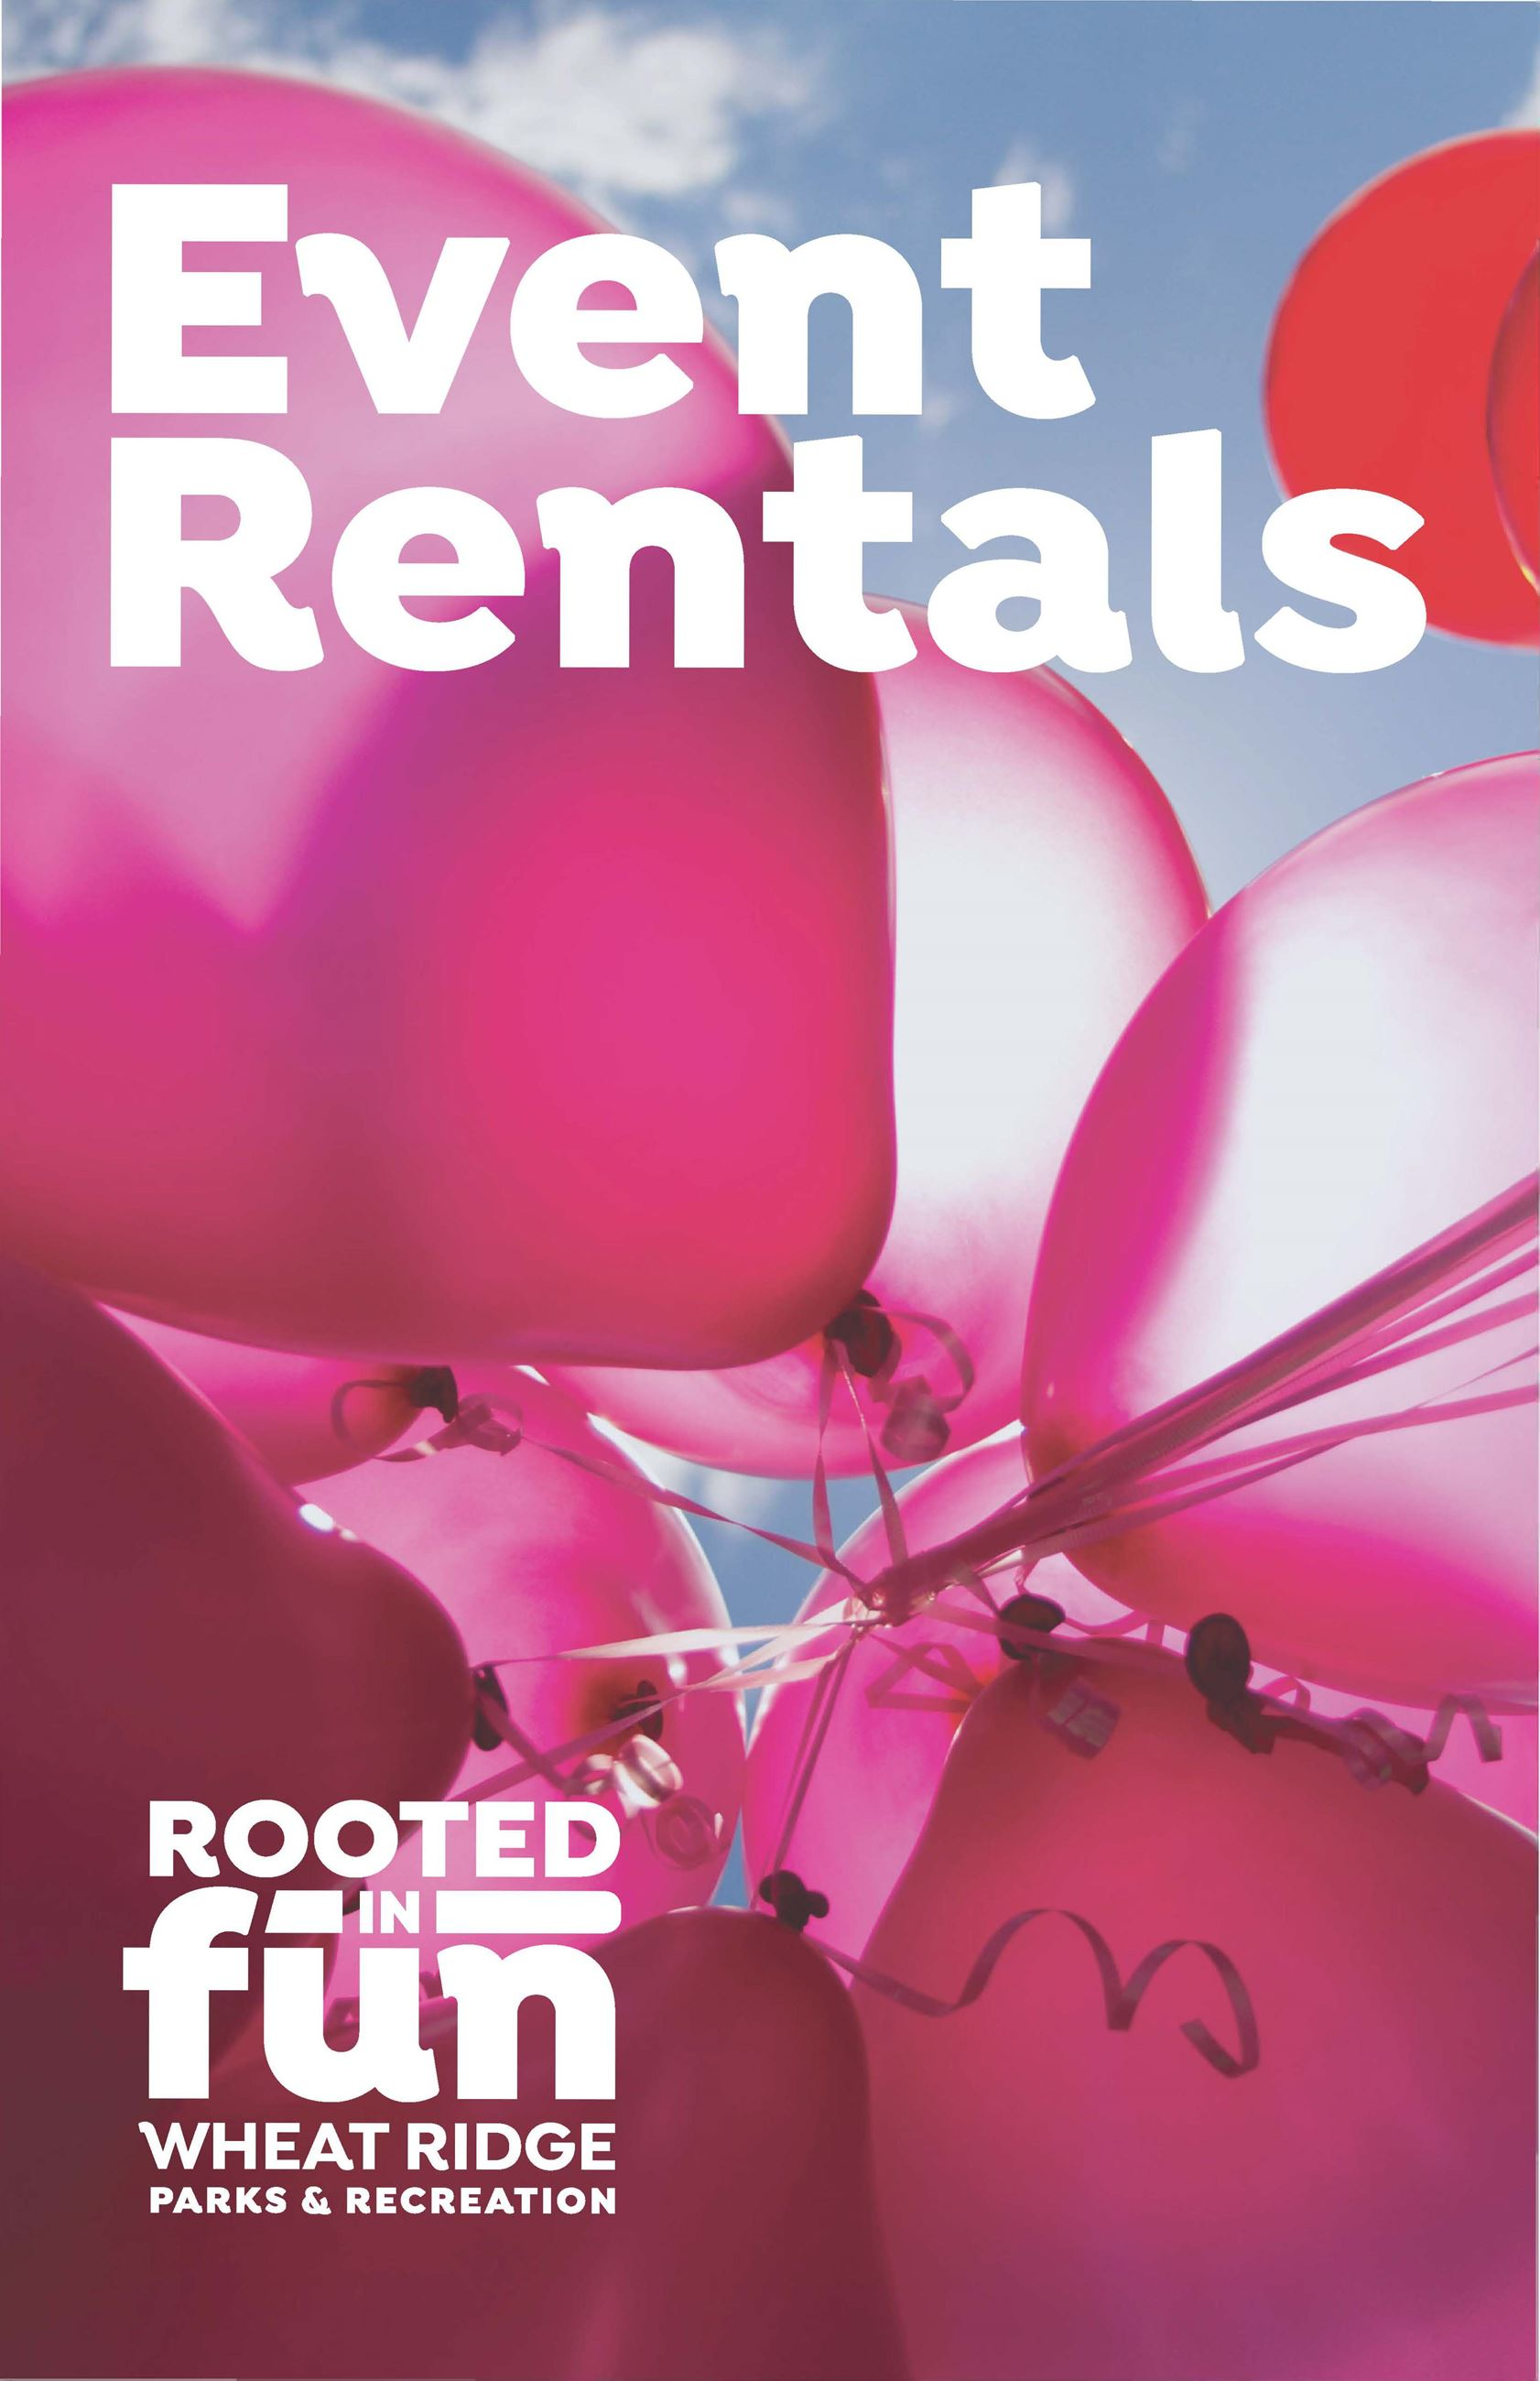 Rental Brochure image of pink balloons